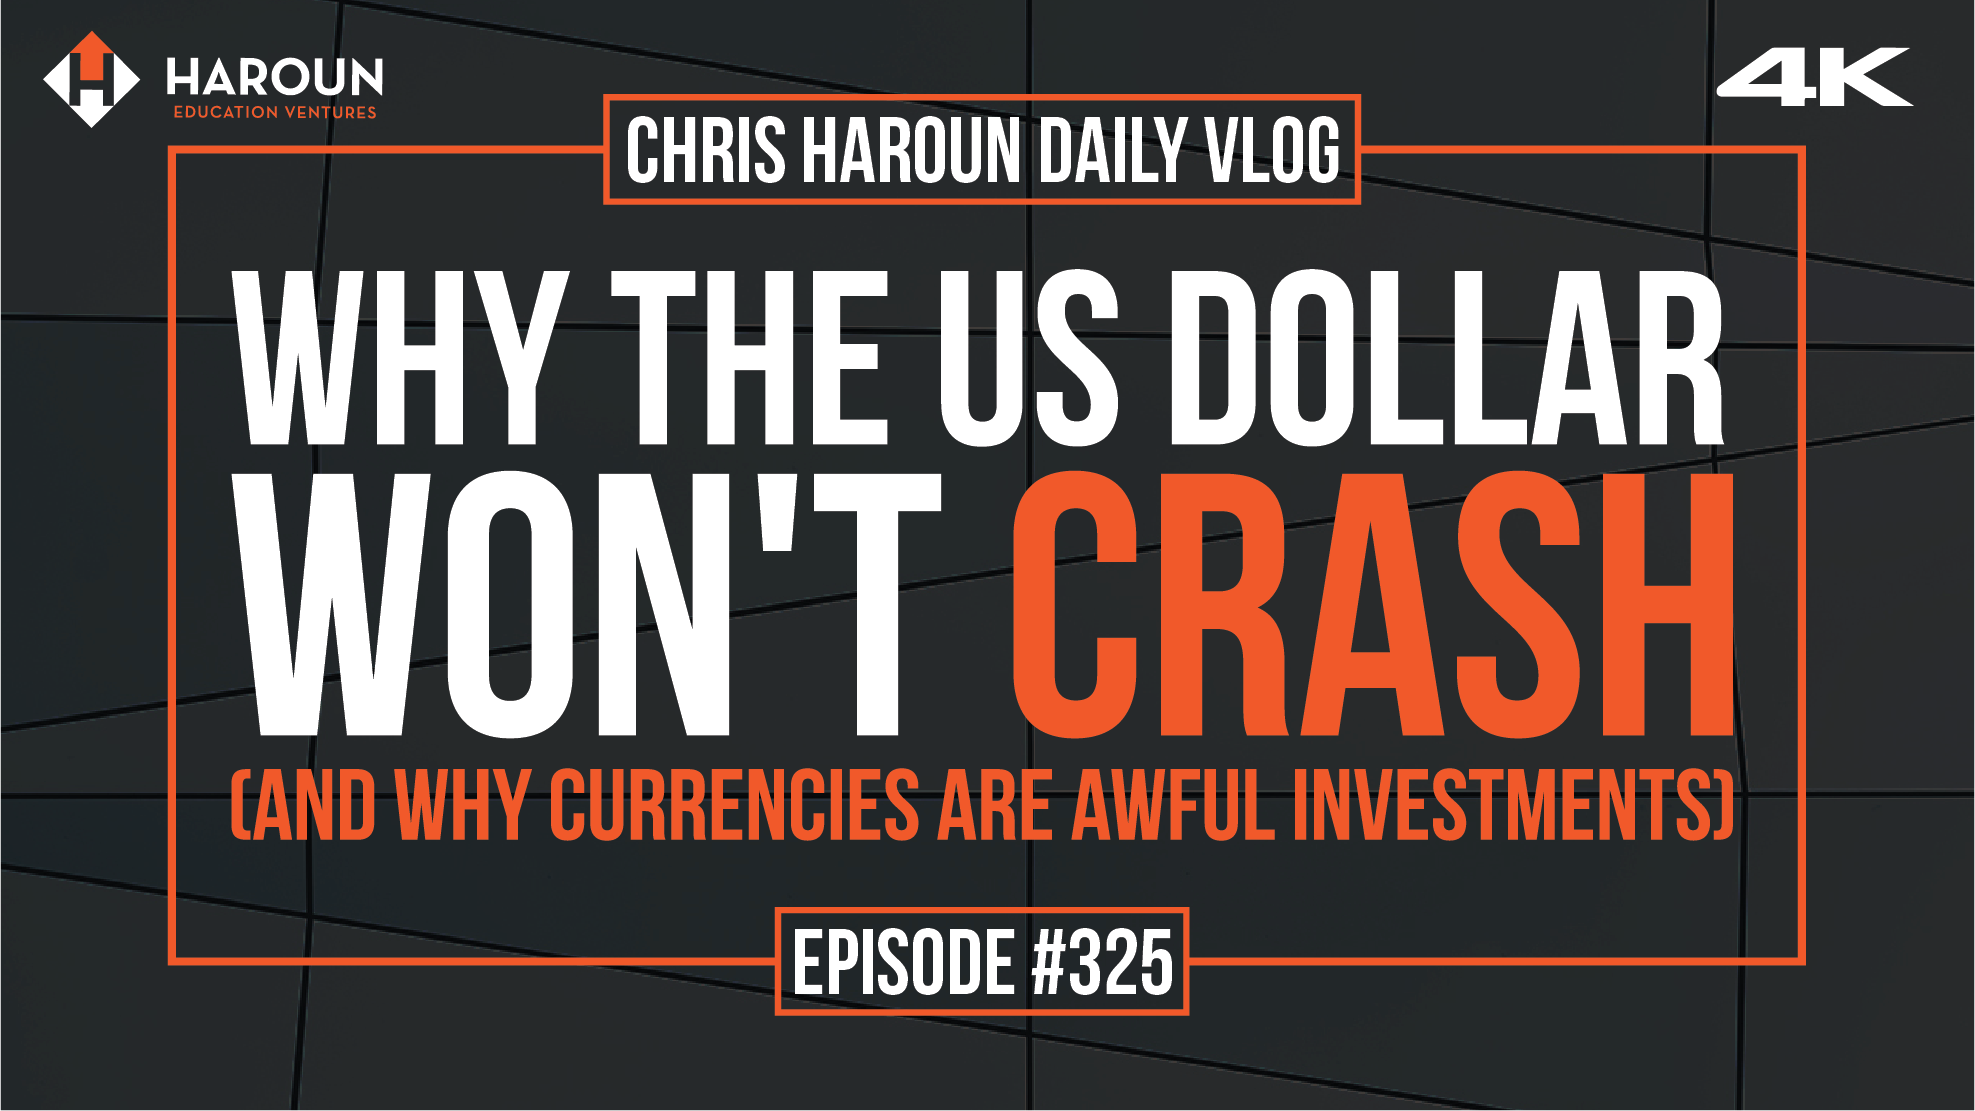 VLOG_325_6_21_2019_Why the US Dollar Won't Crash (and Why Currencies are Awful Investments).png